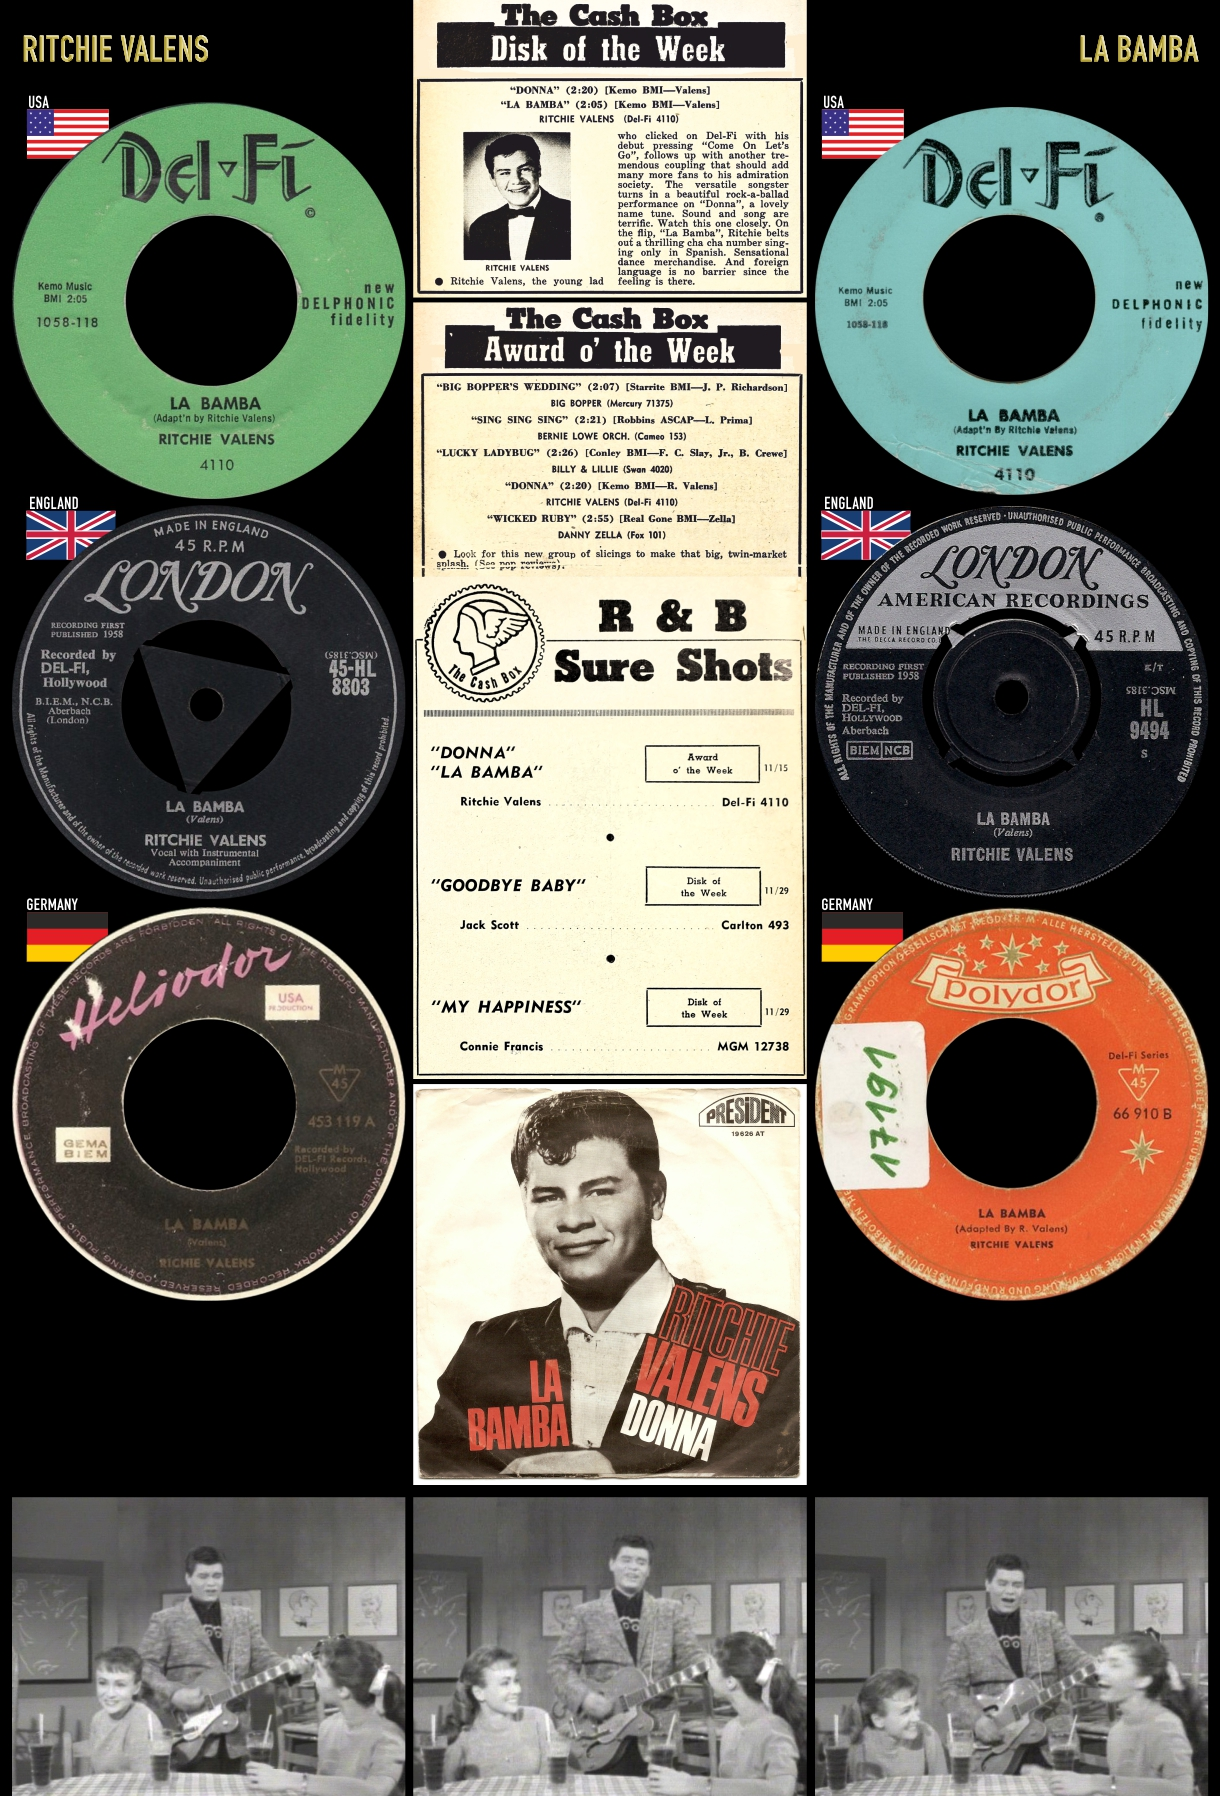 581227_Ritchie Valens_La Bamba_New